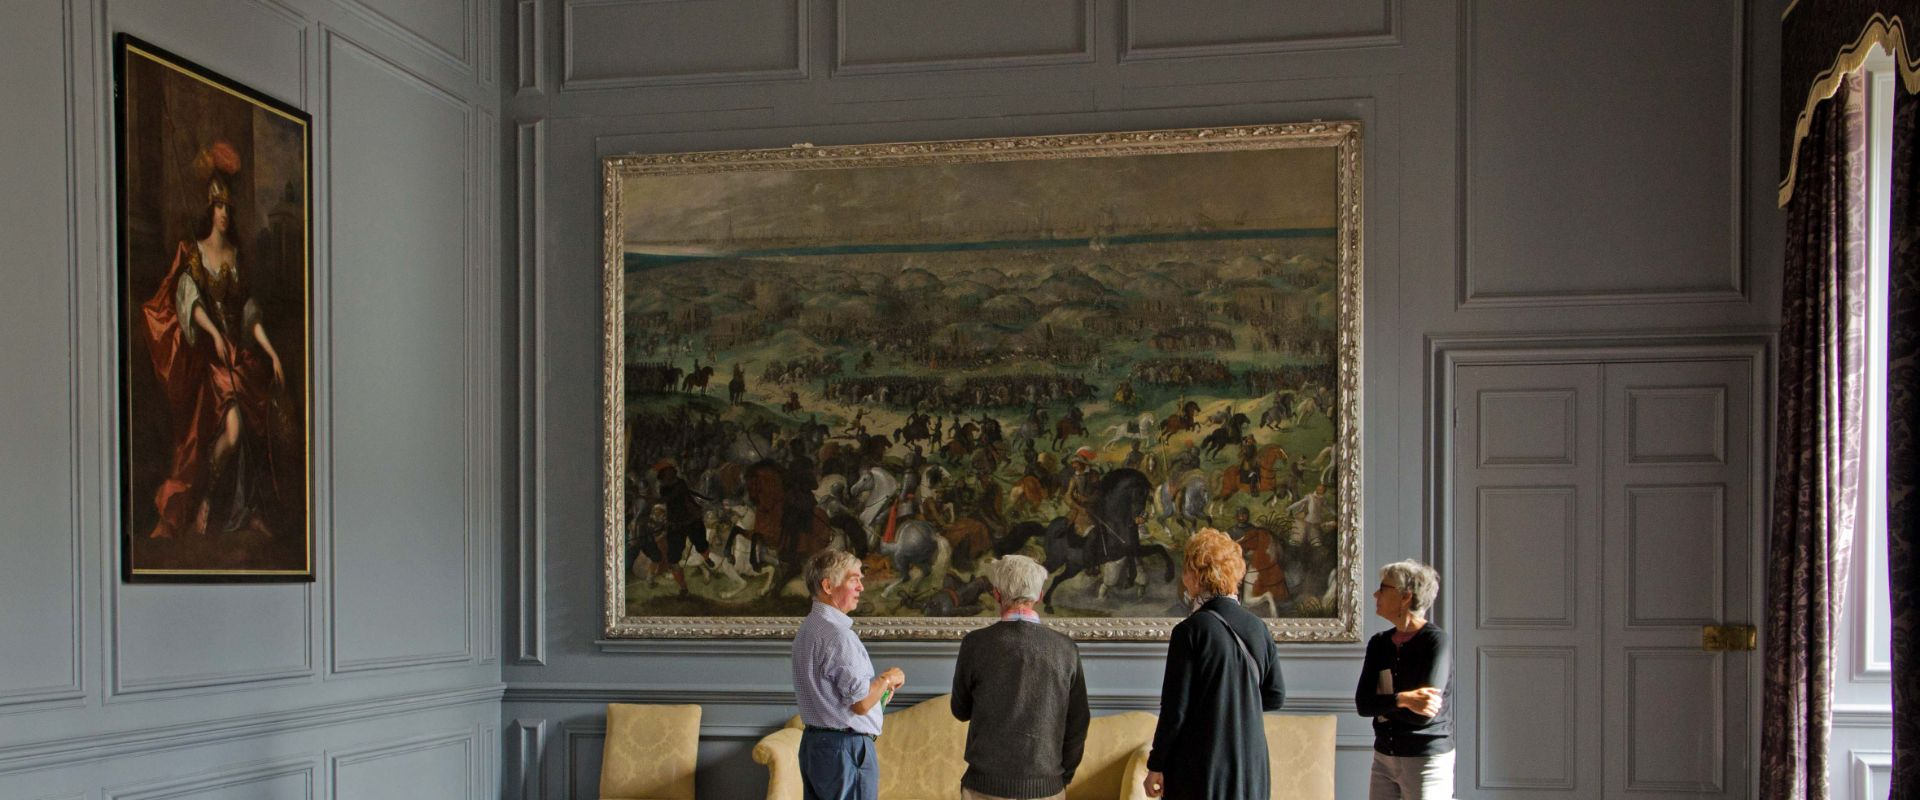 Admiring a painting inside Great Fulford